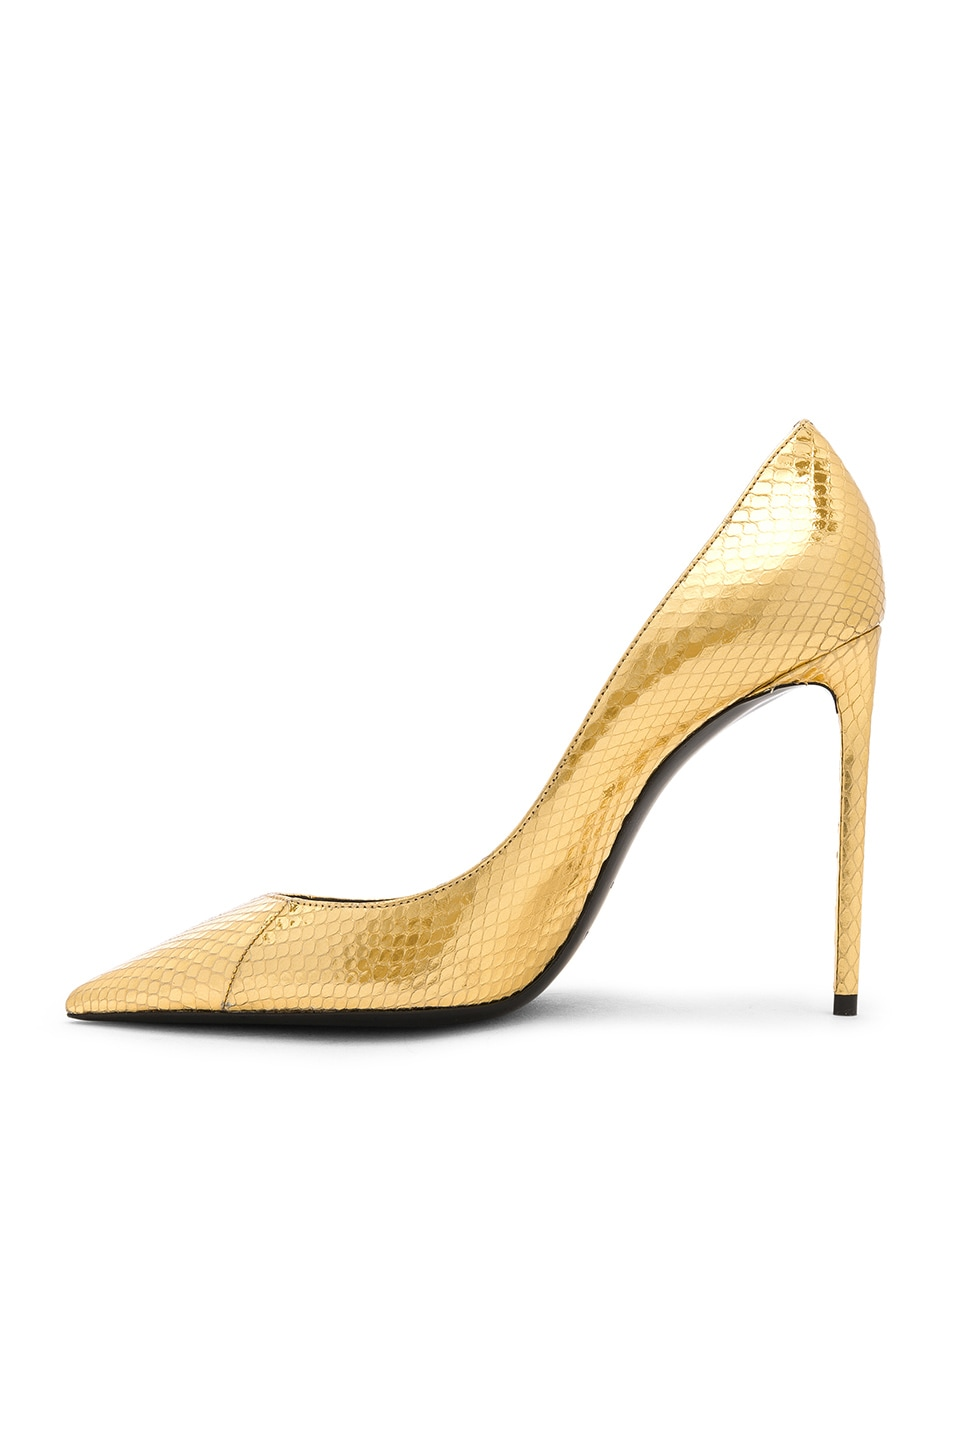 Image 5 of Saint Laurent Metallic Snakeskin Zoe Pumps in Gold